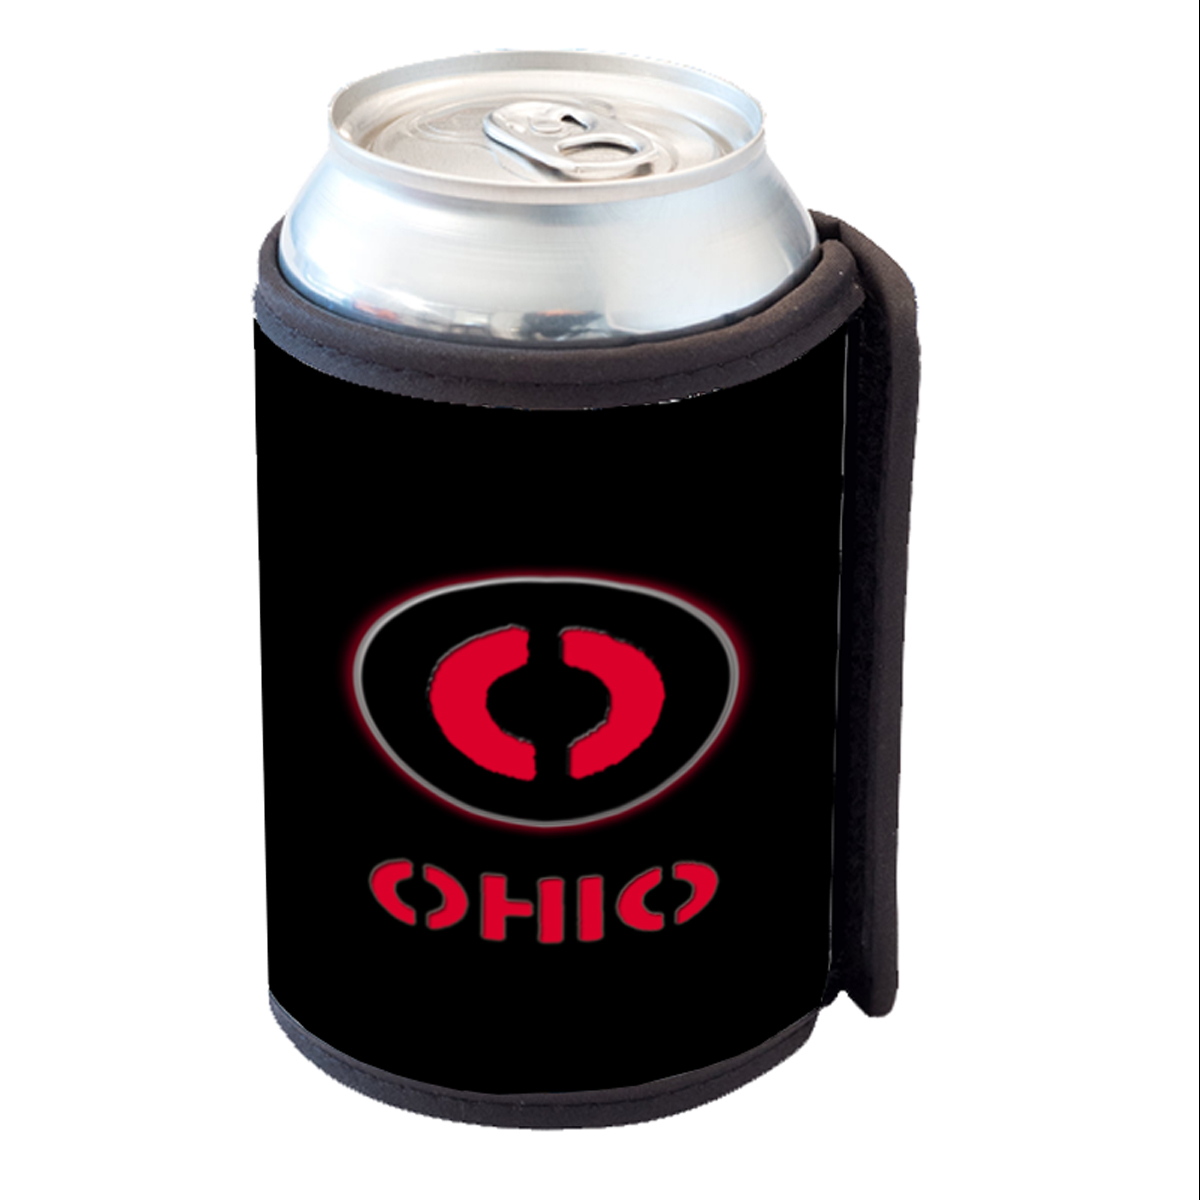 KuzmarK Insulated Drink Can Cooler Hugger - Ohio